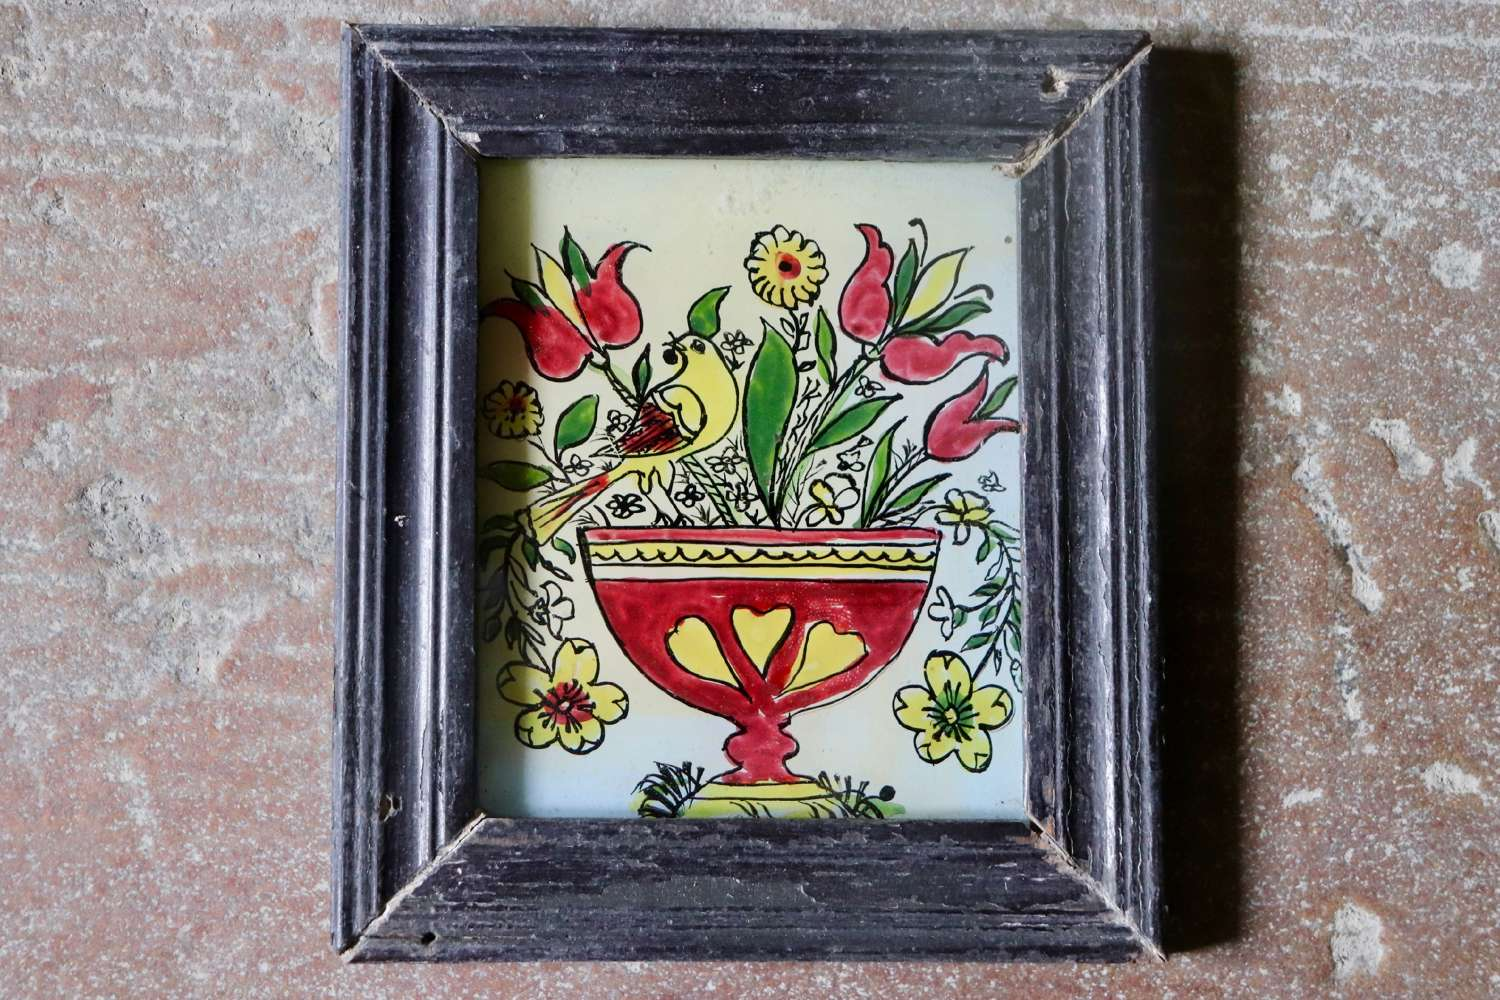 Reverse glass Indian paintings in old frames